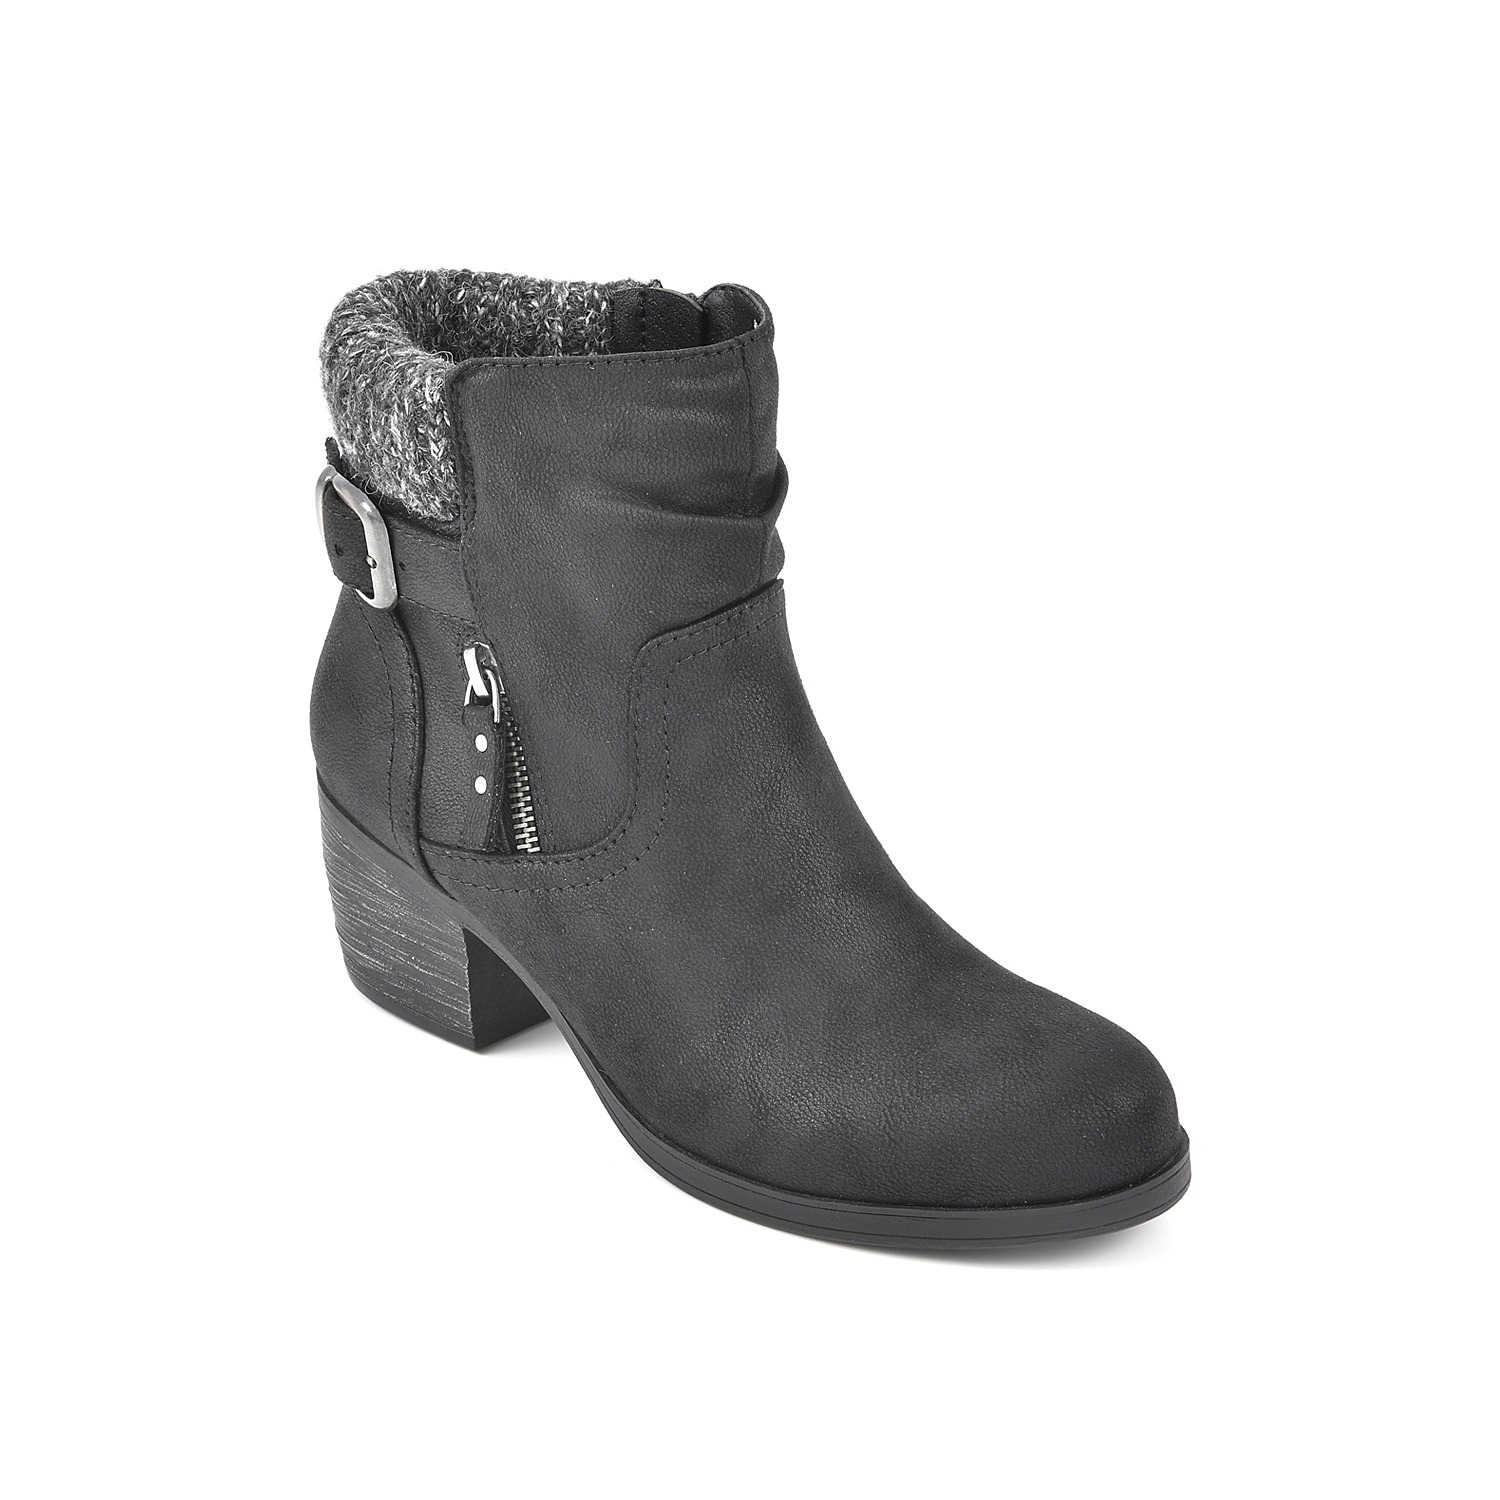 Add a layer of warmth to your chilly weather outfit with the Stellar bootie by White Mountain. This ankle bootie treated with water-resistant 3M Scotchgard is styled with cozy collar and buckle strap detail.Click here for Boot Measuring Guide.